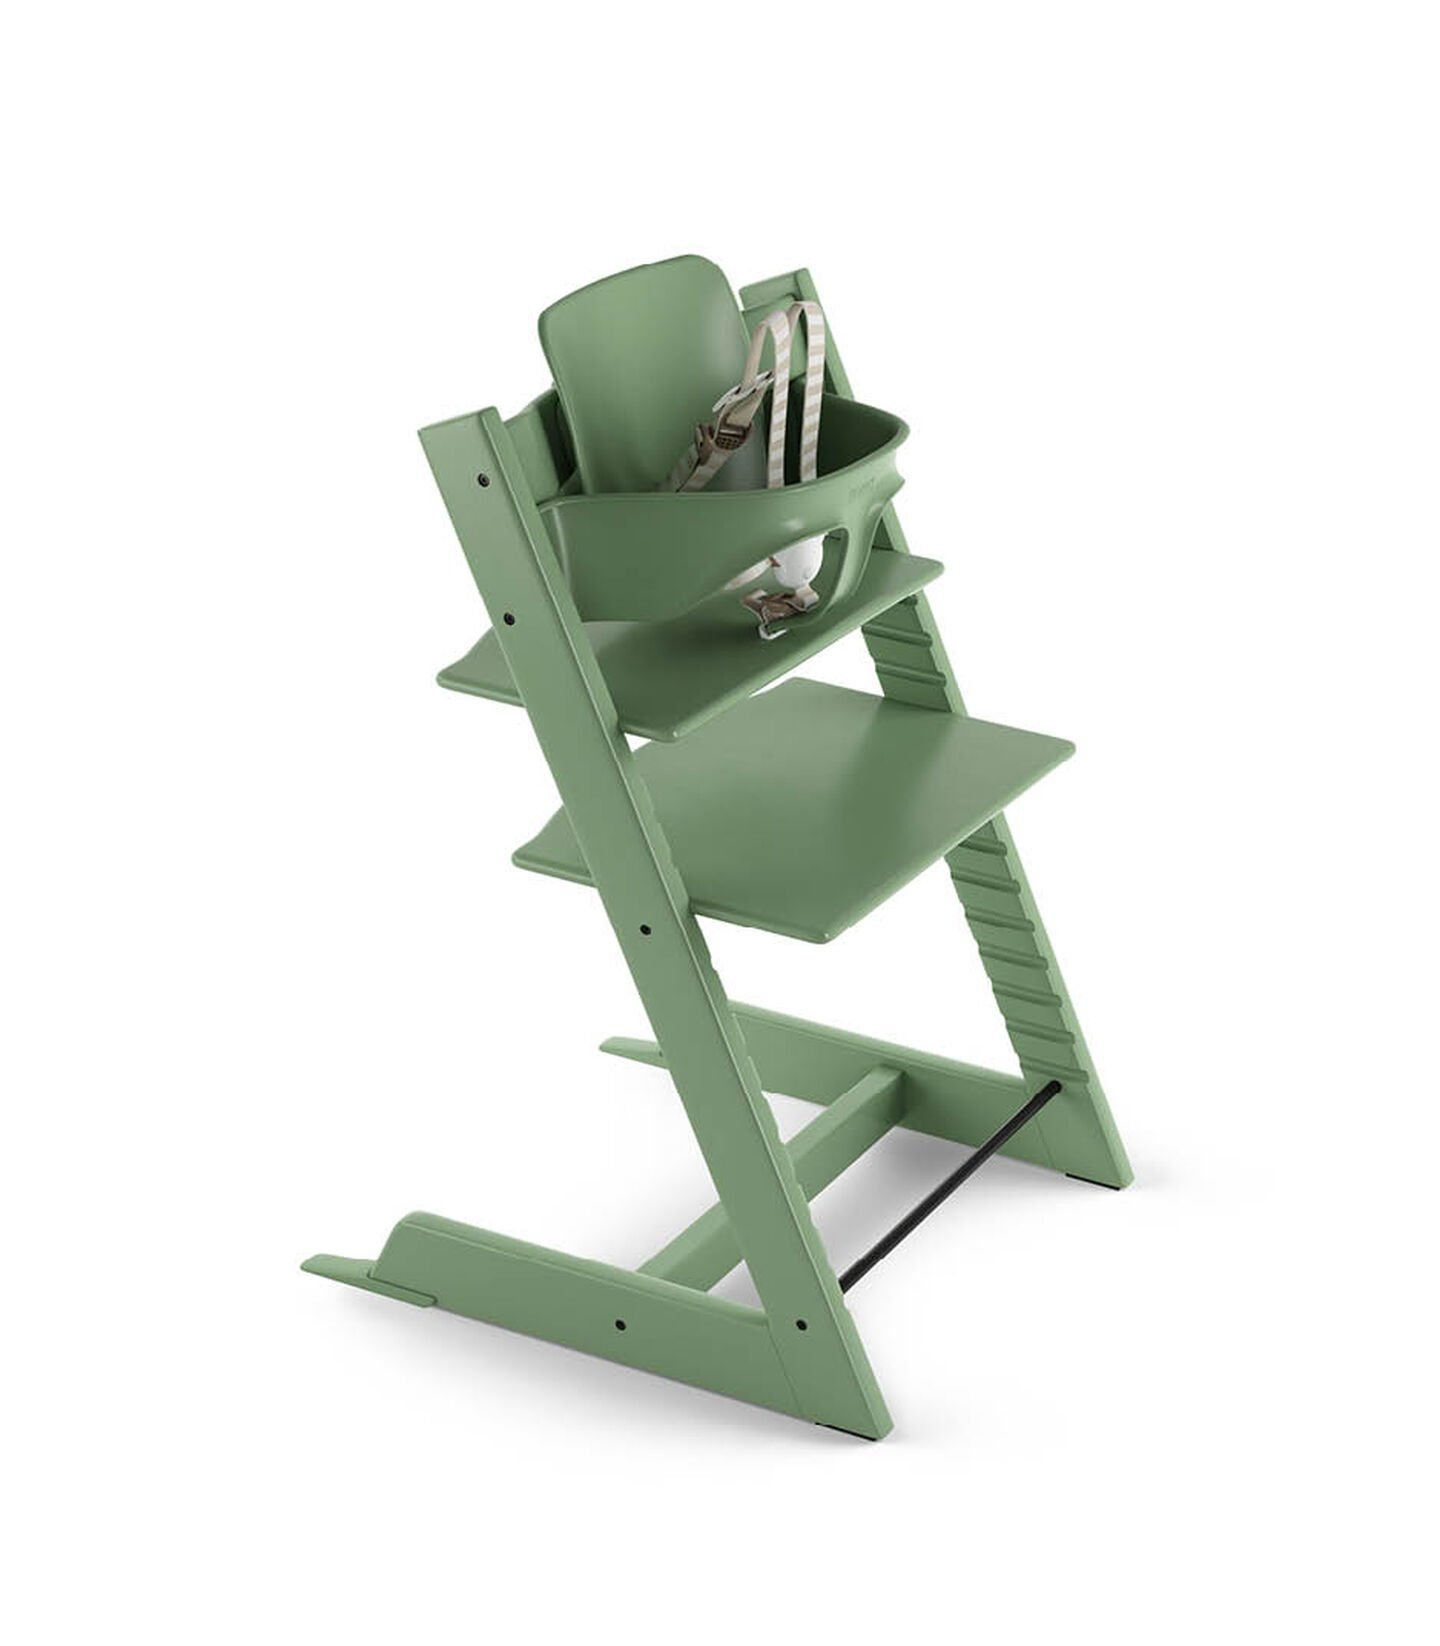 Tripp Trapp® Bundle High Chair US 18 Moss Green, Moss Green, mainview view 2